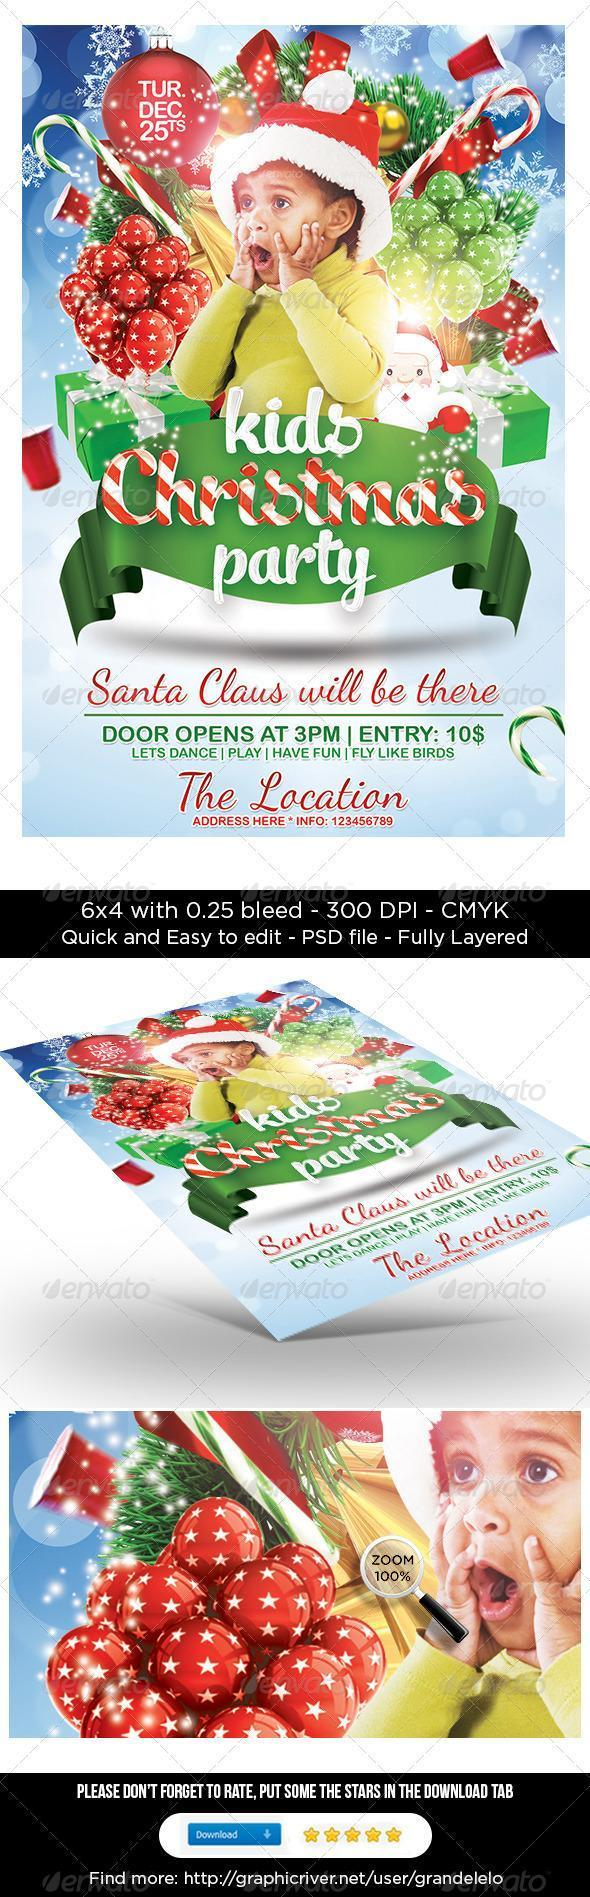 Kids Party Flyer Christmas